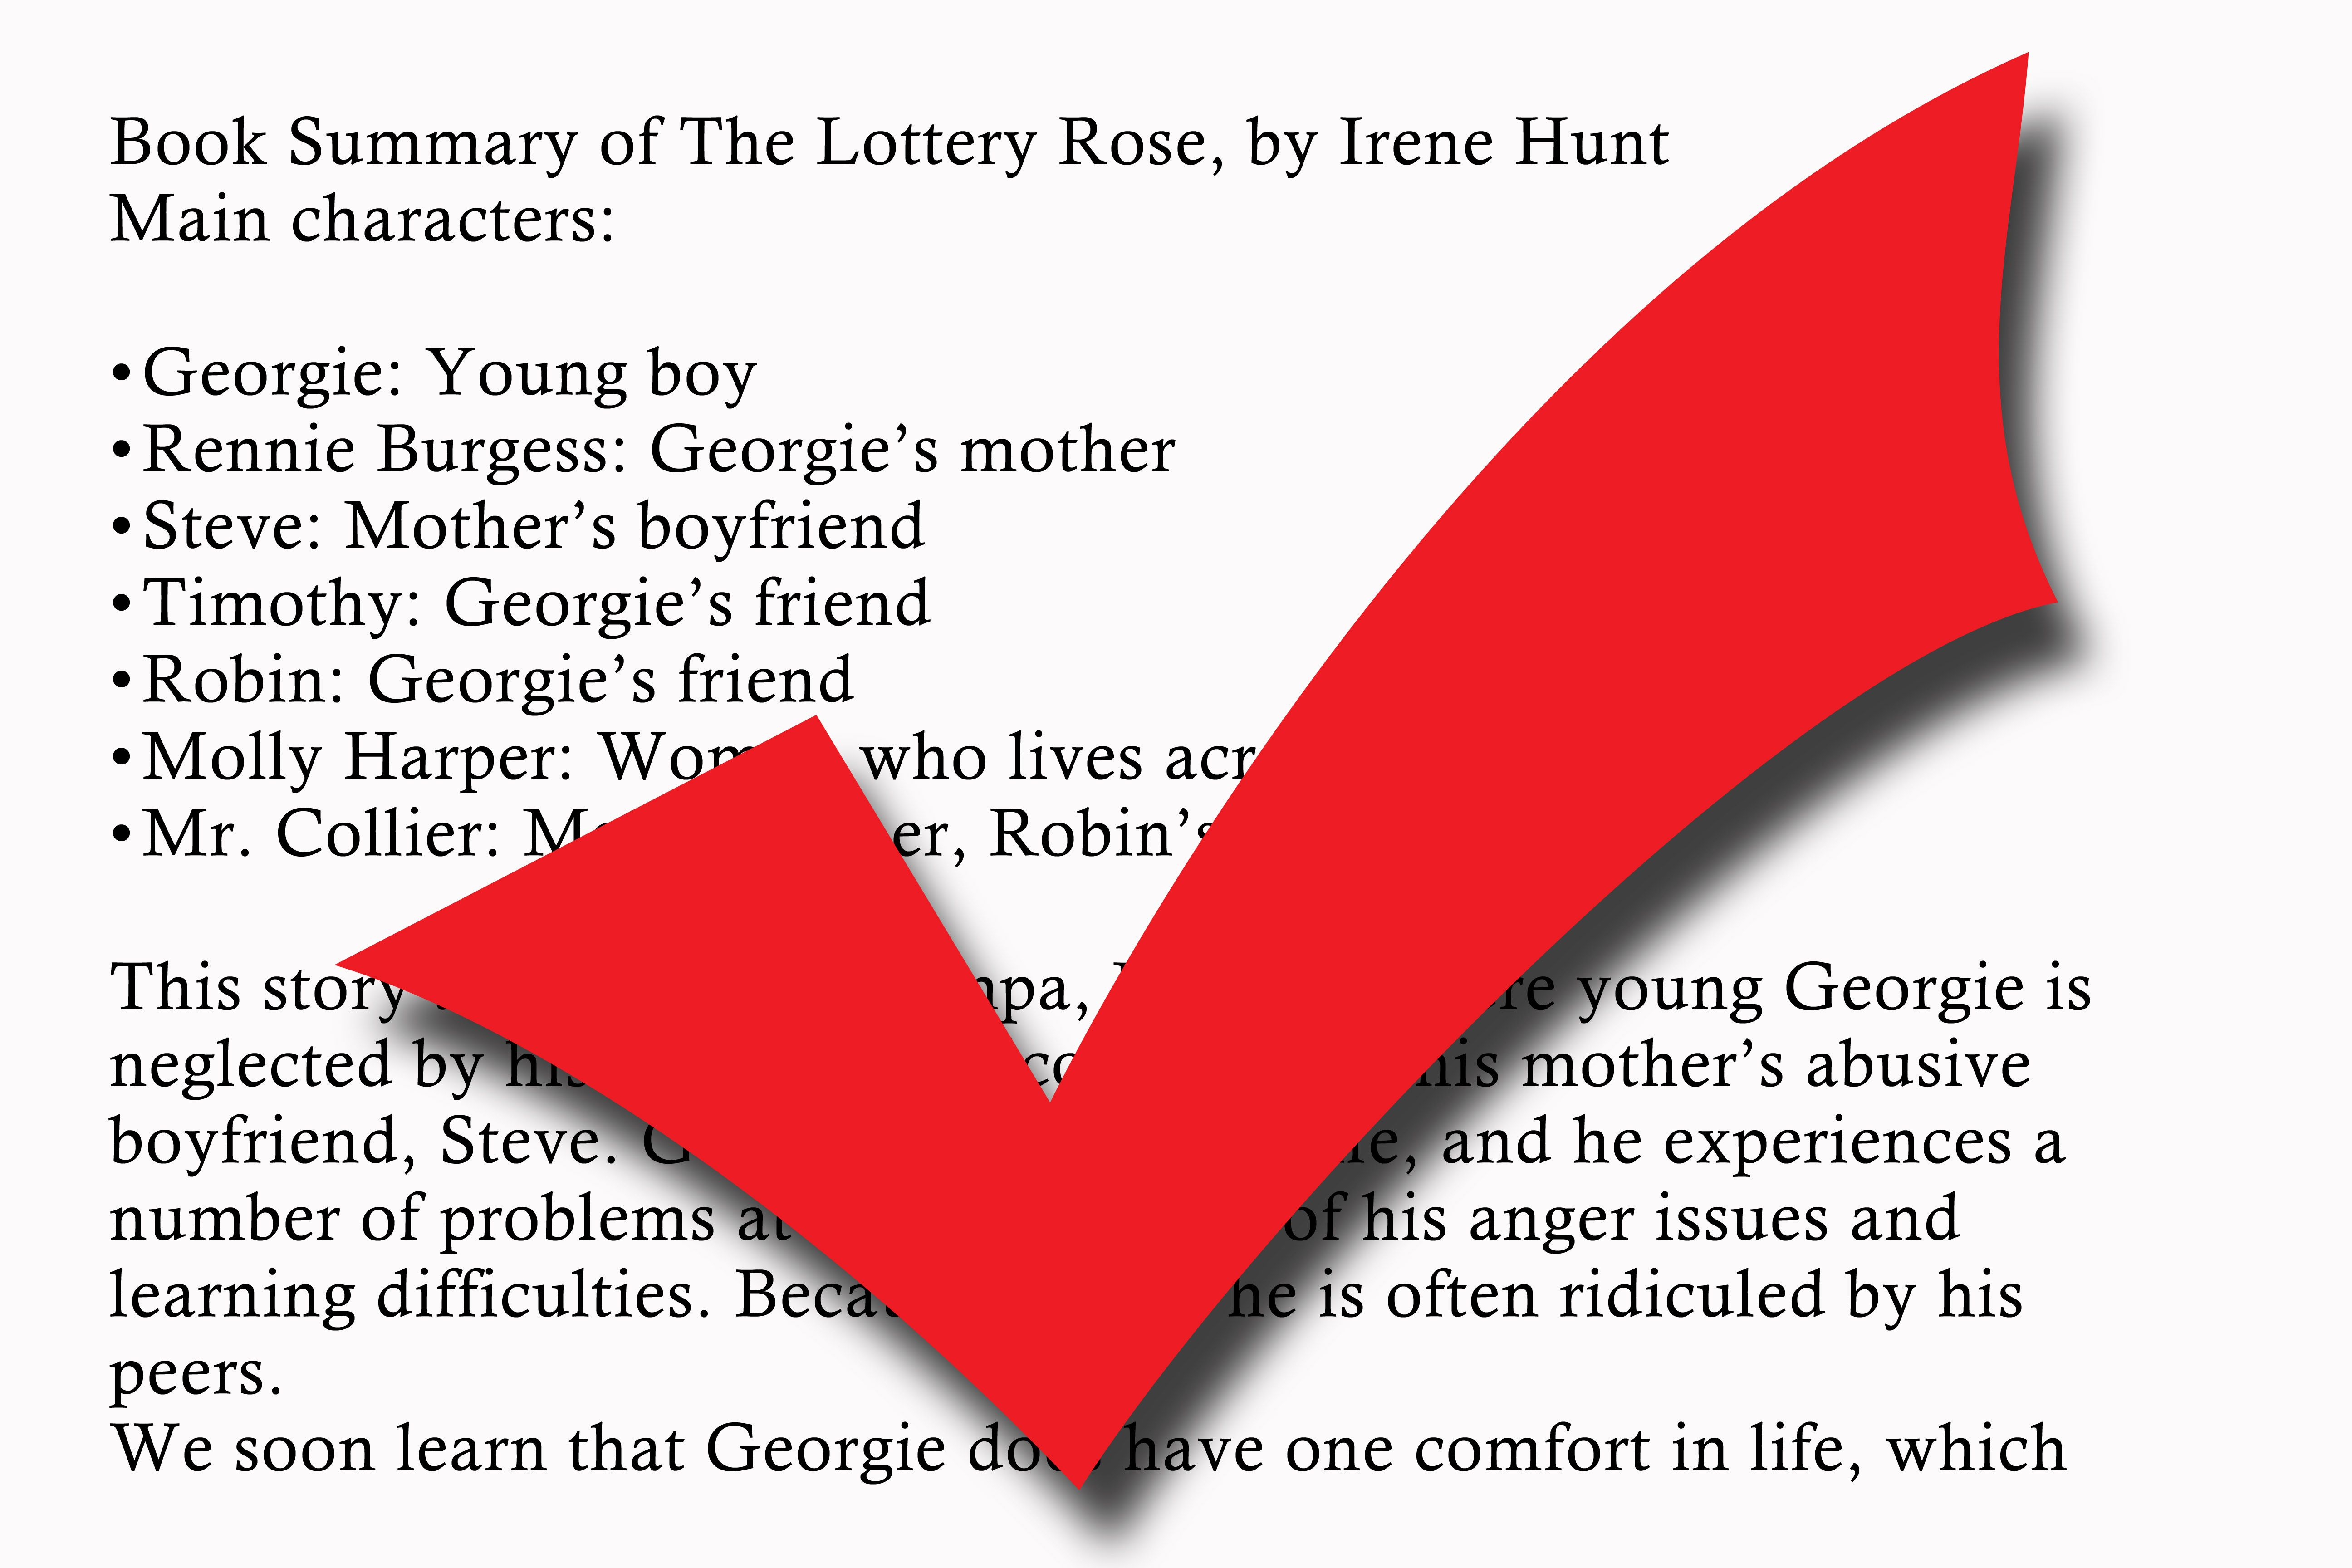 essay on the lottery rose The painted door- literary essay marriage is something that is sometimes hard to keep and brings struggles to people's lives the painted door, a short story written by sinclair ross, involves a married couple who goes through multiple conflicts and endeavor to live with each other on a distant farmland.